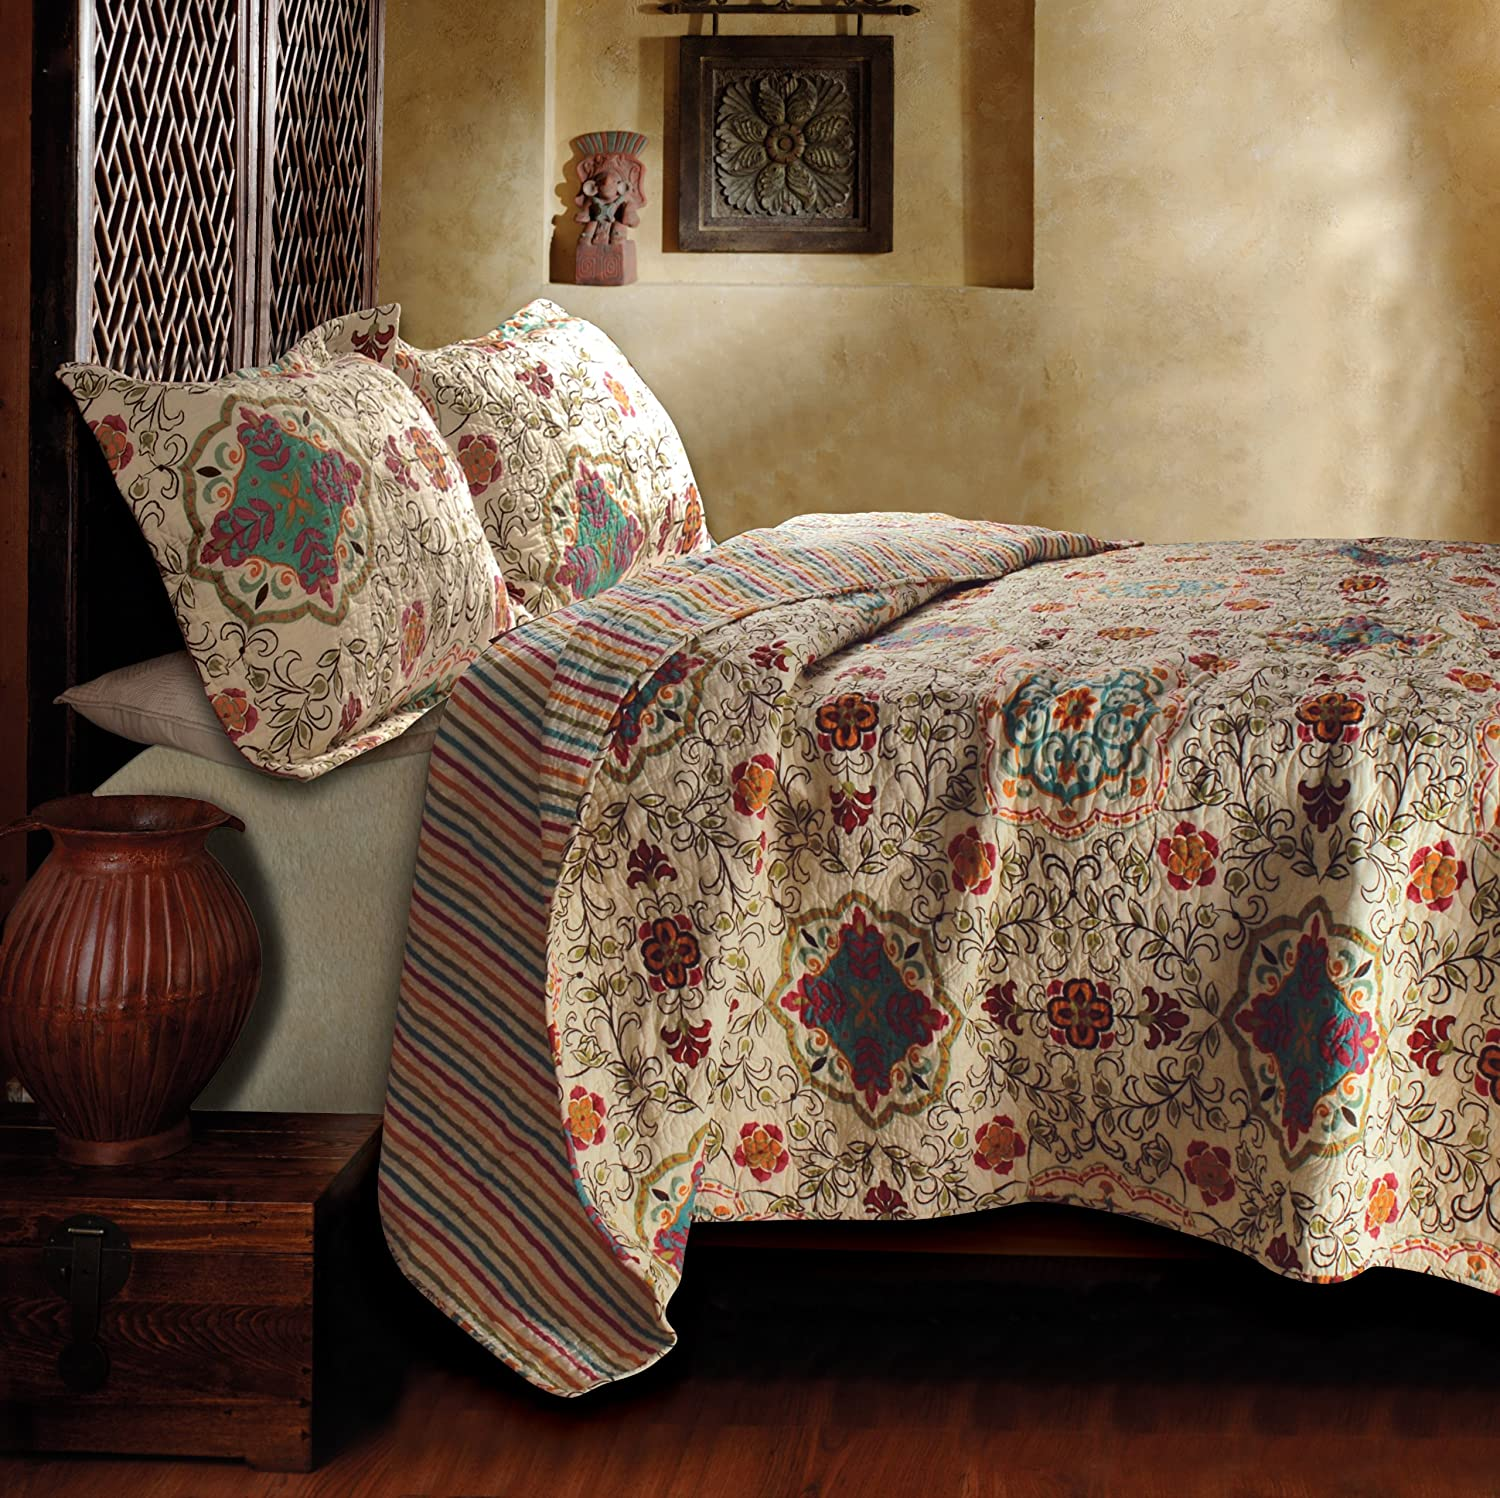 Amazon.com: Greenland Home Esprit Spice Quilt Set, Twin: Home ... : greenland quilt - Adamdwight.com